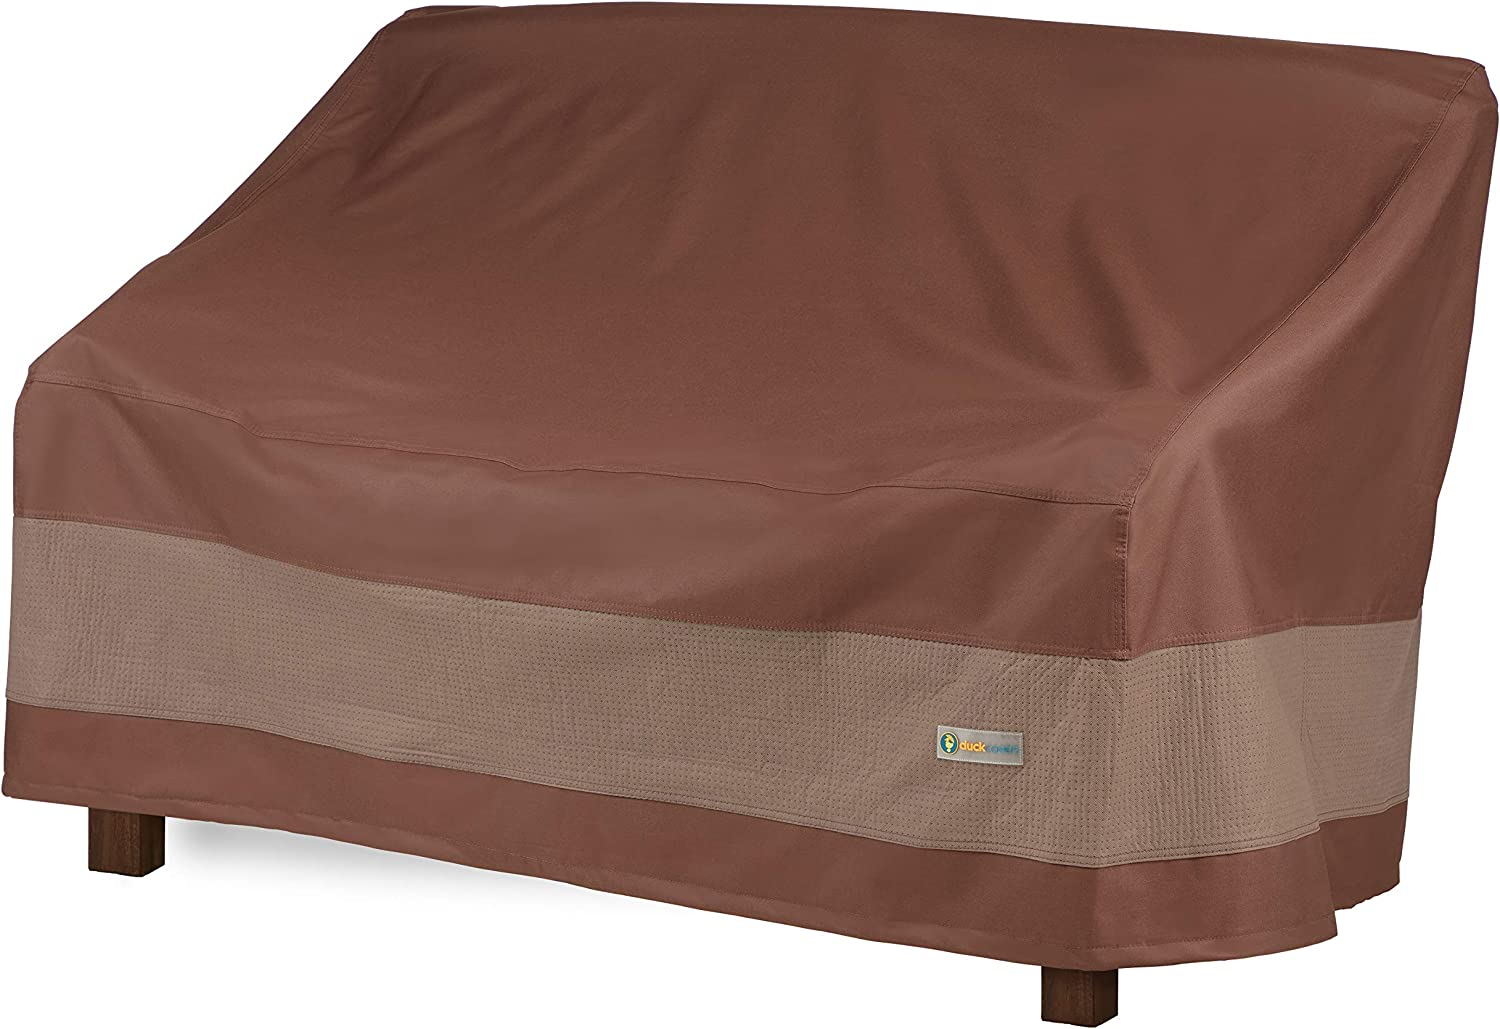 Duck Covers Ultimate Water-Resistant 61 Inch Patio Bench Cover